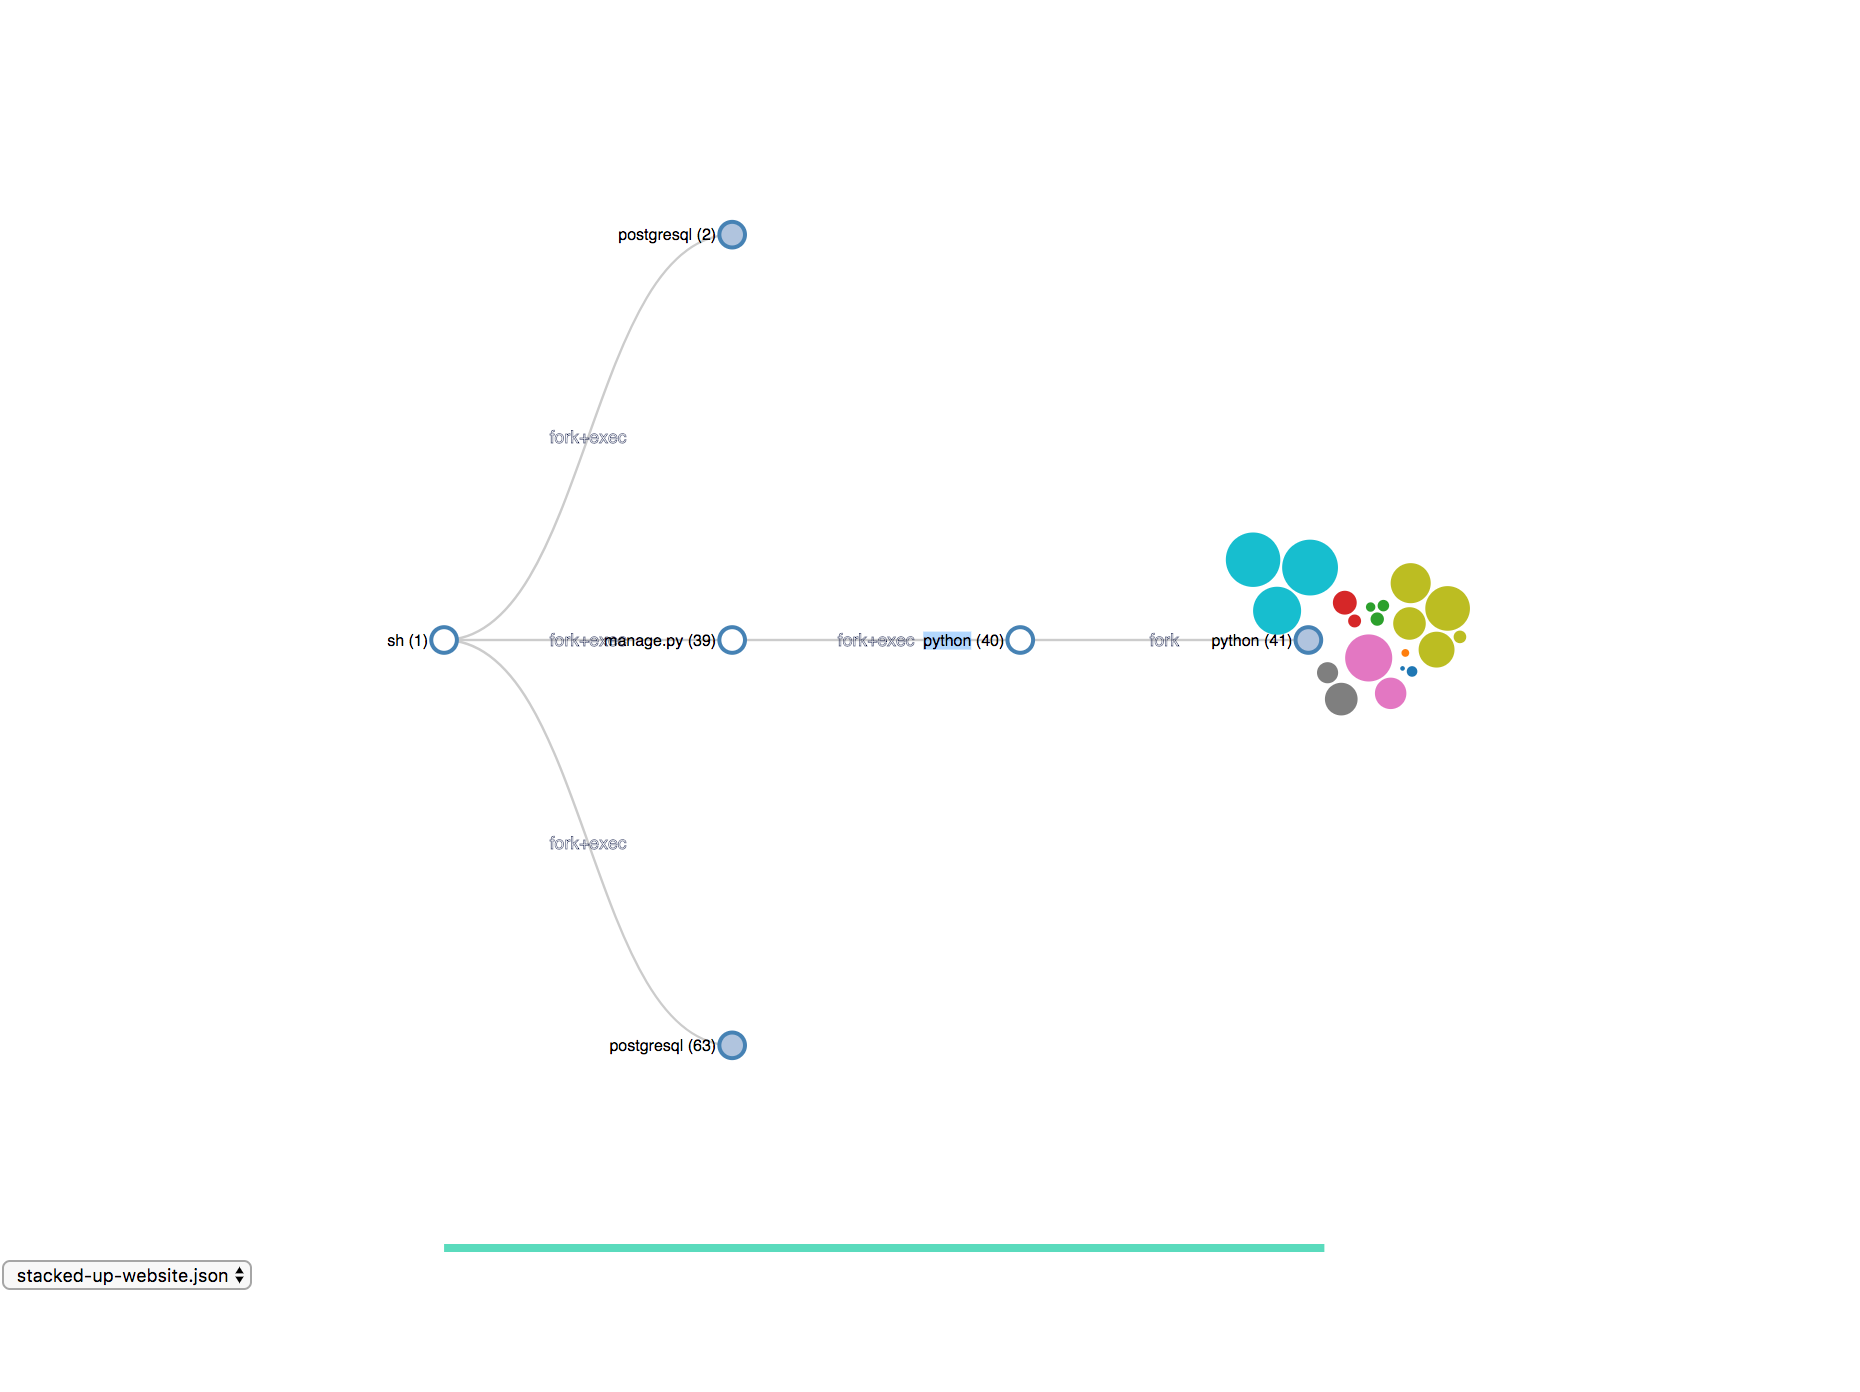 Trying to use force layout to represent files in the provenance graph